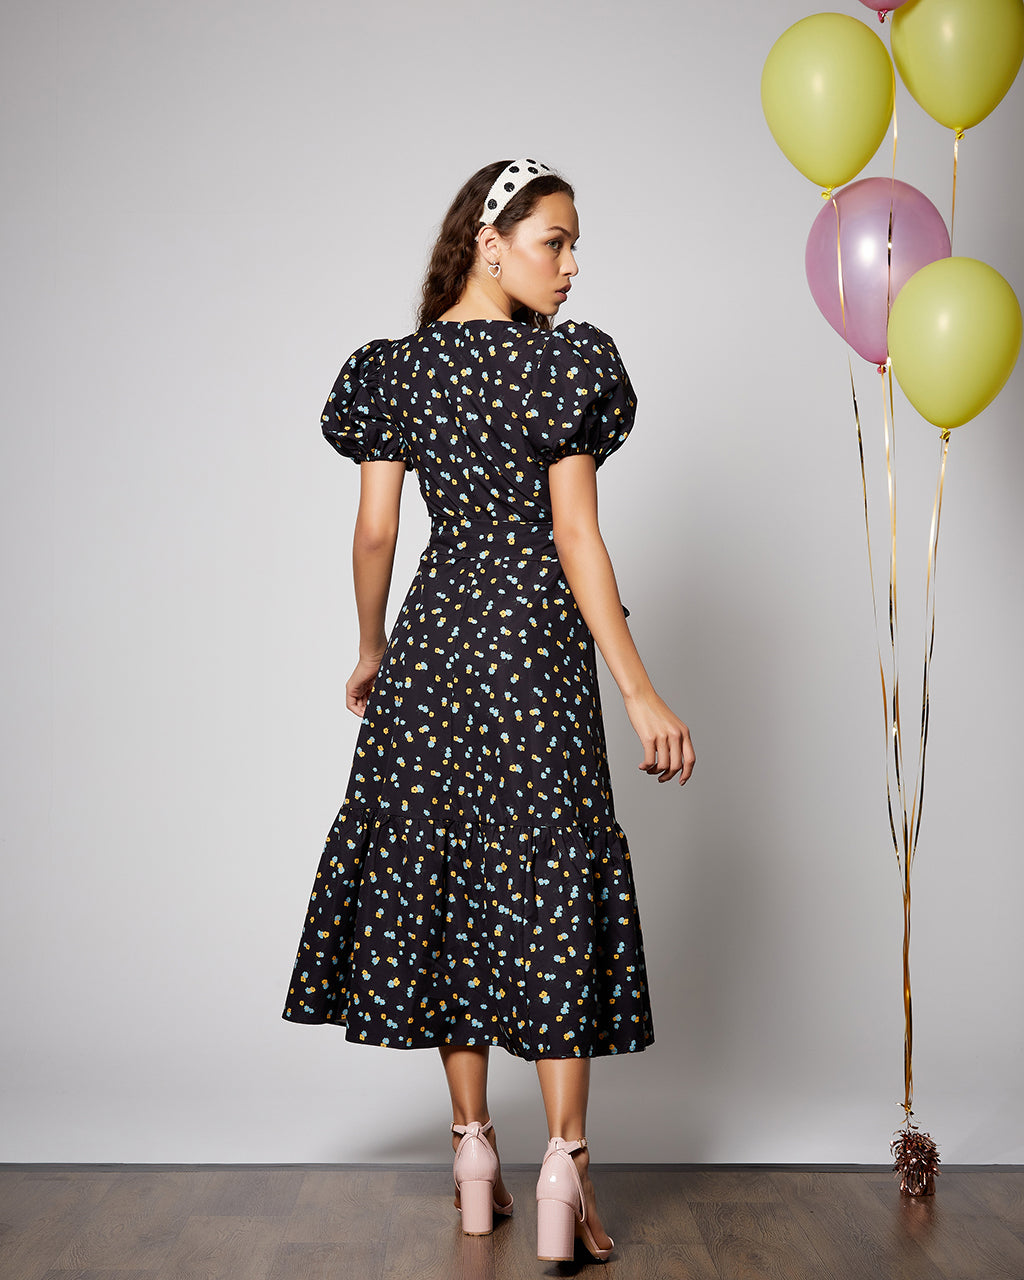 back view of model wearing black midi dress with confetti design